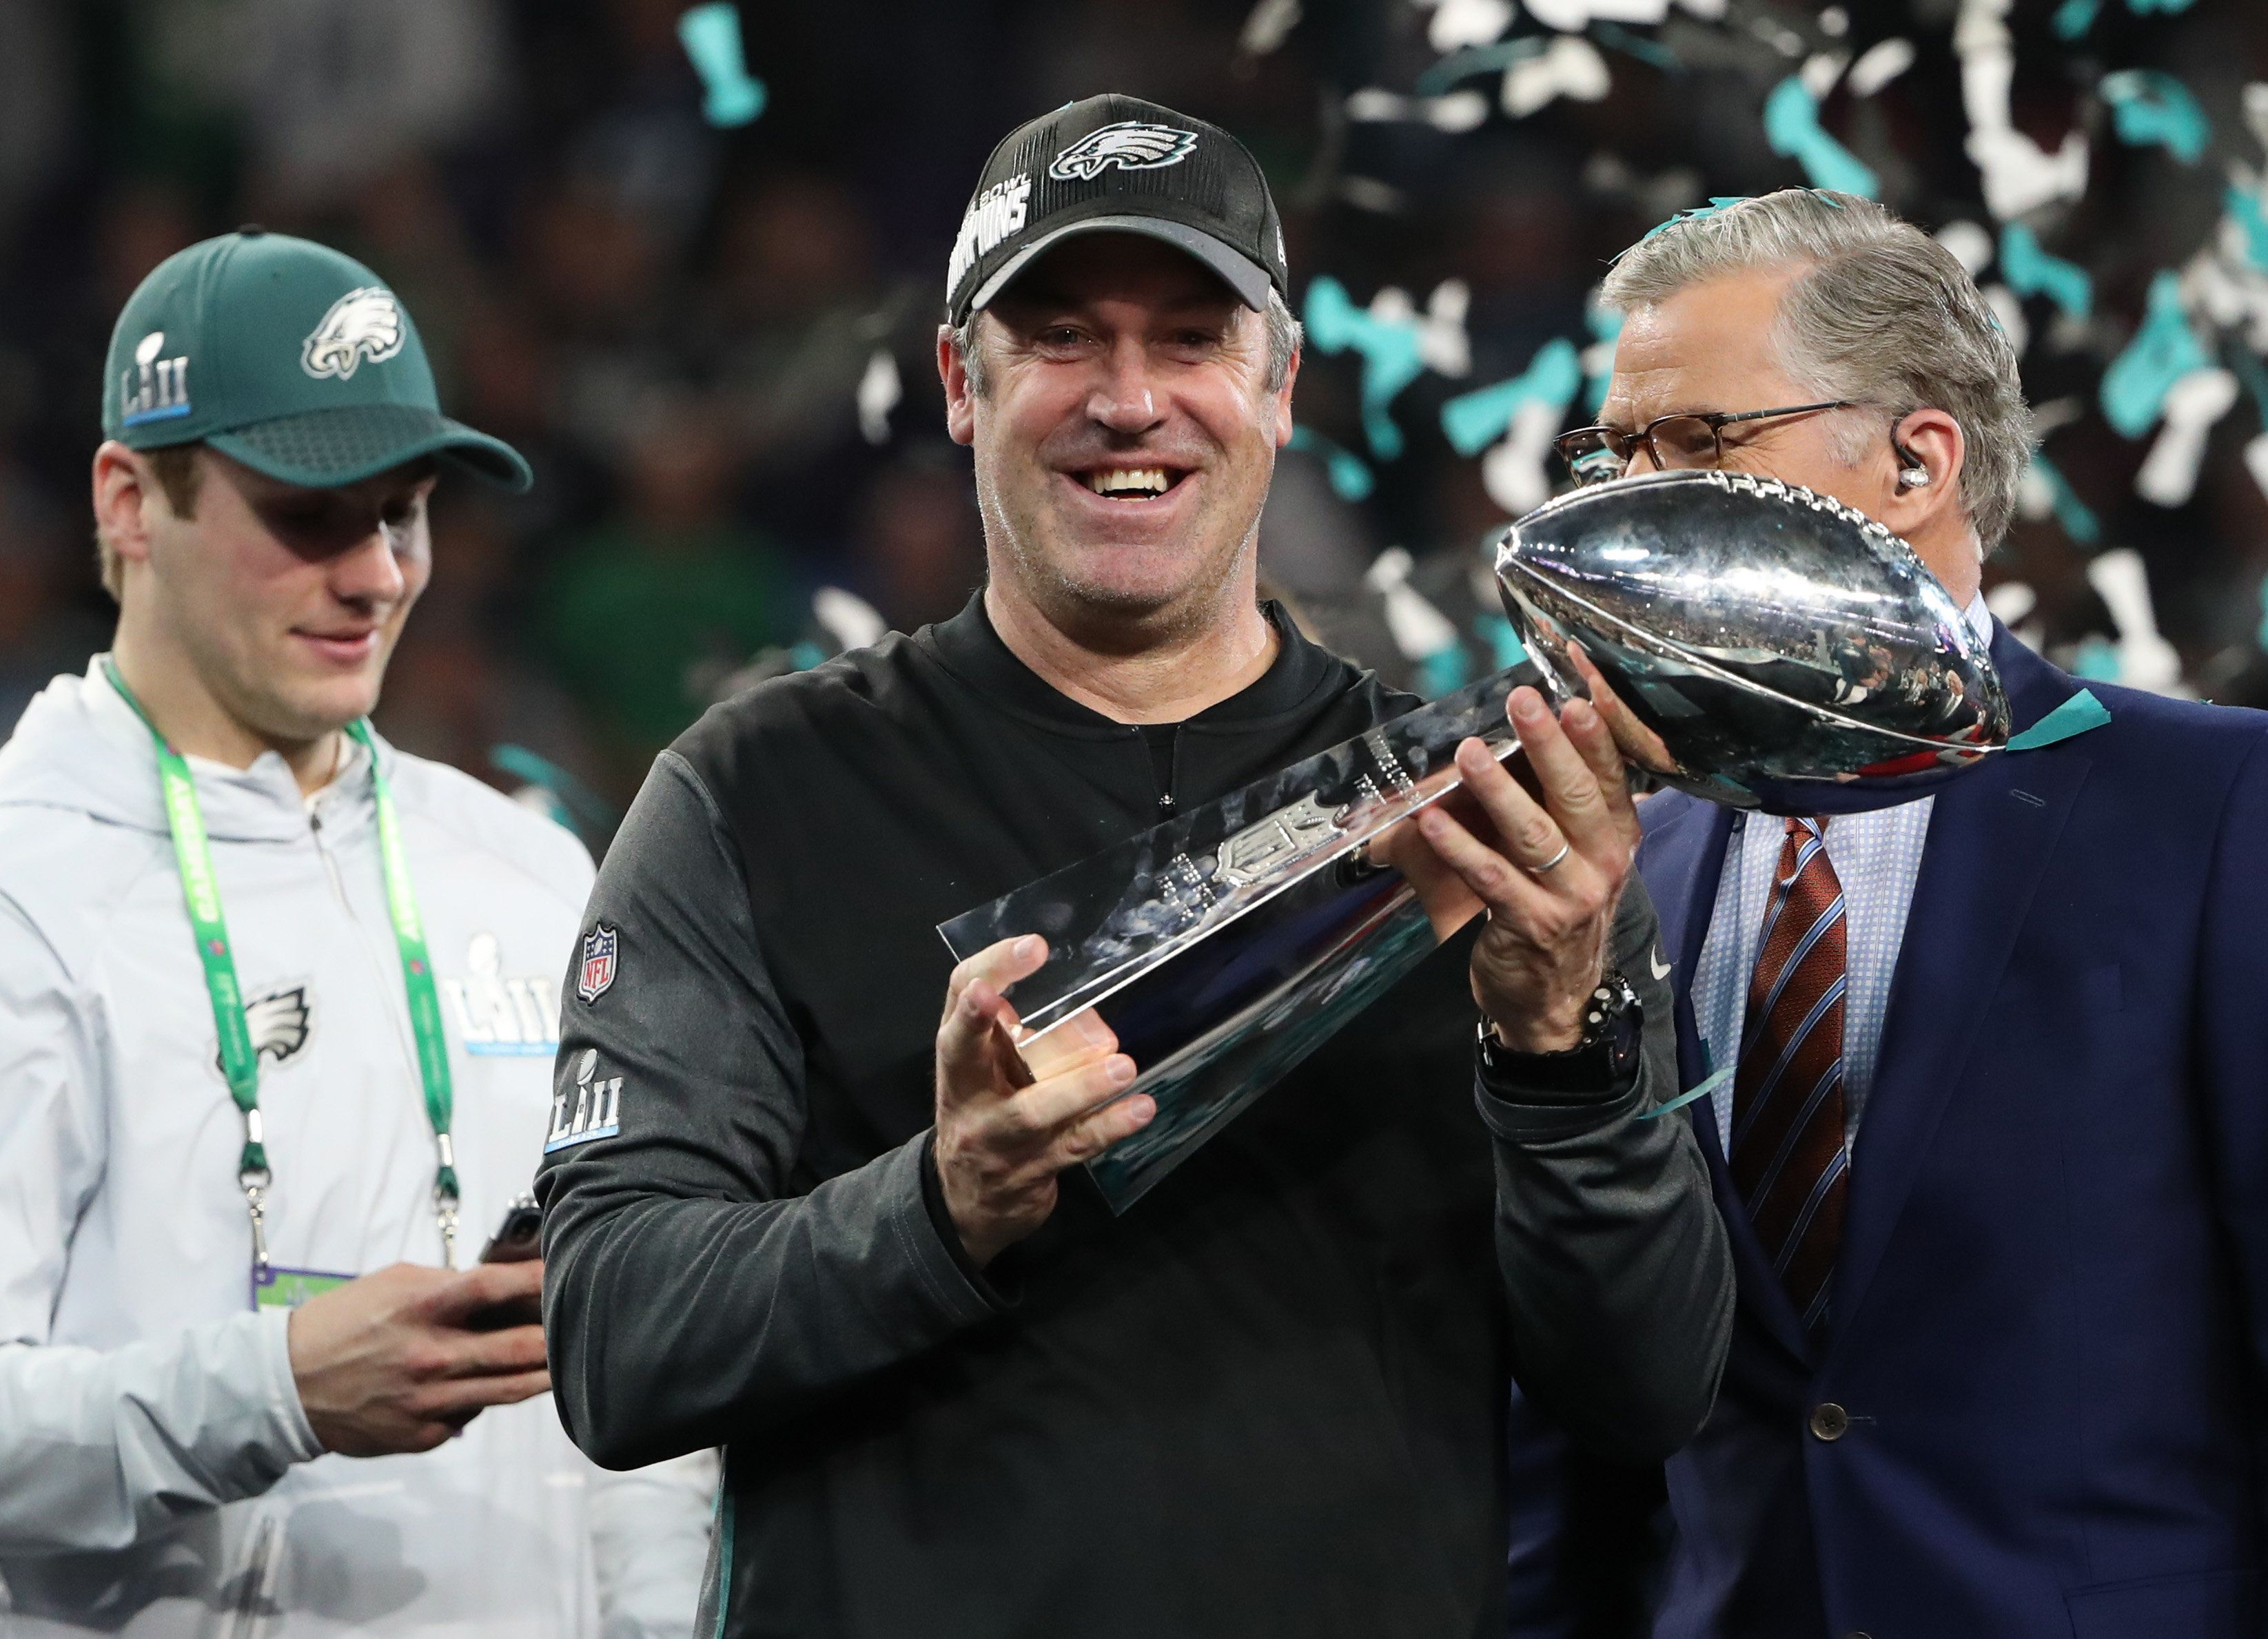 Philadelphia Eagles head coach Doug Pederson celebrates winning Super Bowl LII with the Vince Lombardi Trophy in Minneapolis,